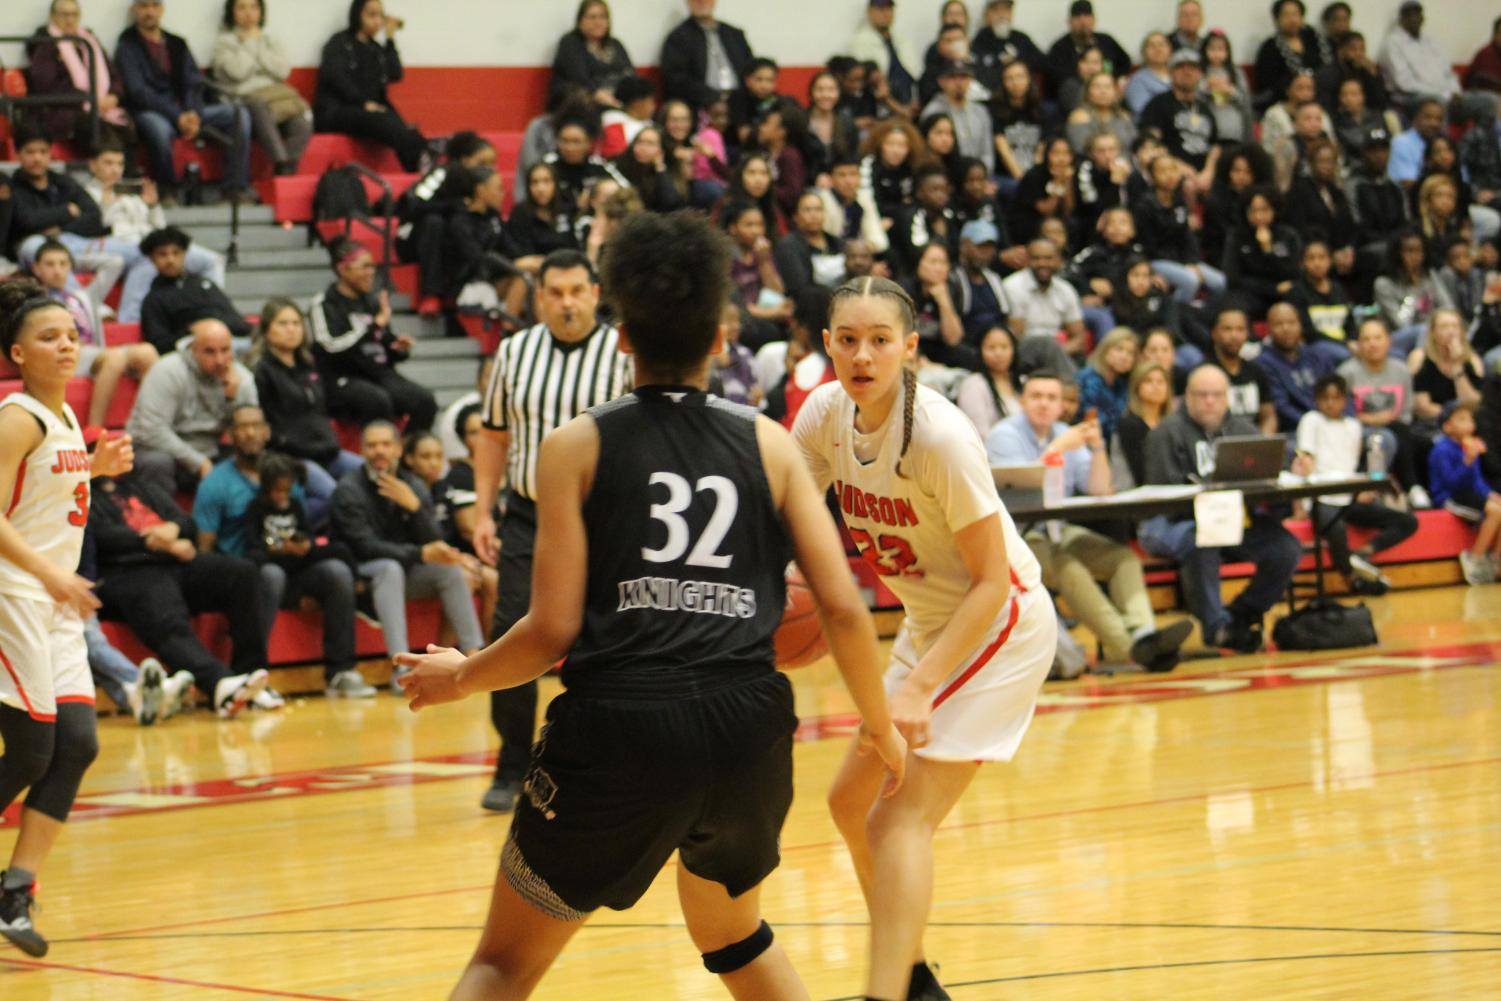 Senior Kyra White looks for the best pass possible. The Lady Rockets beat Steele 60-47.